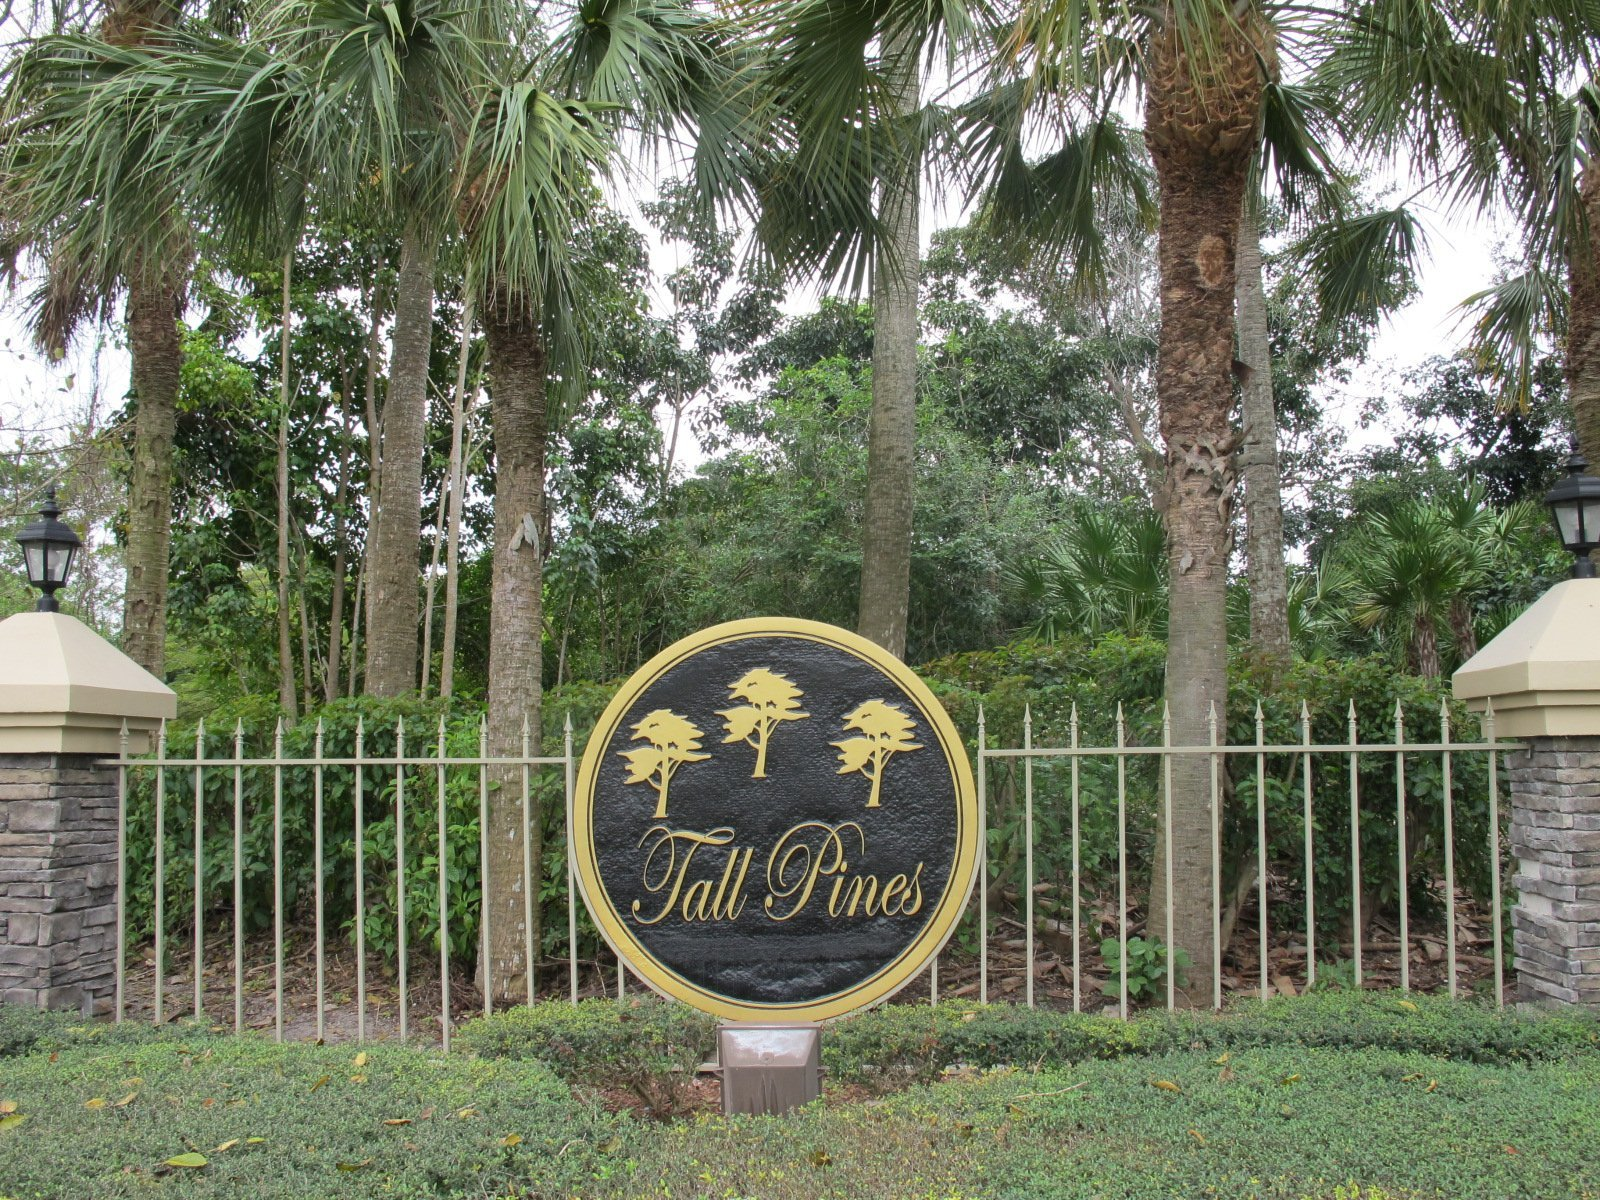 Tall Pines Homes for sale